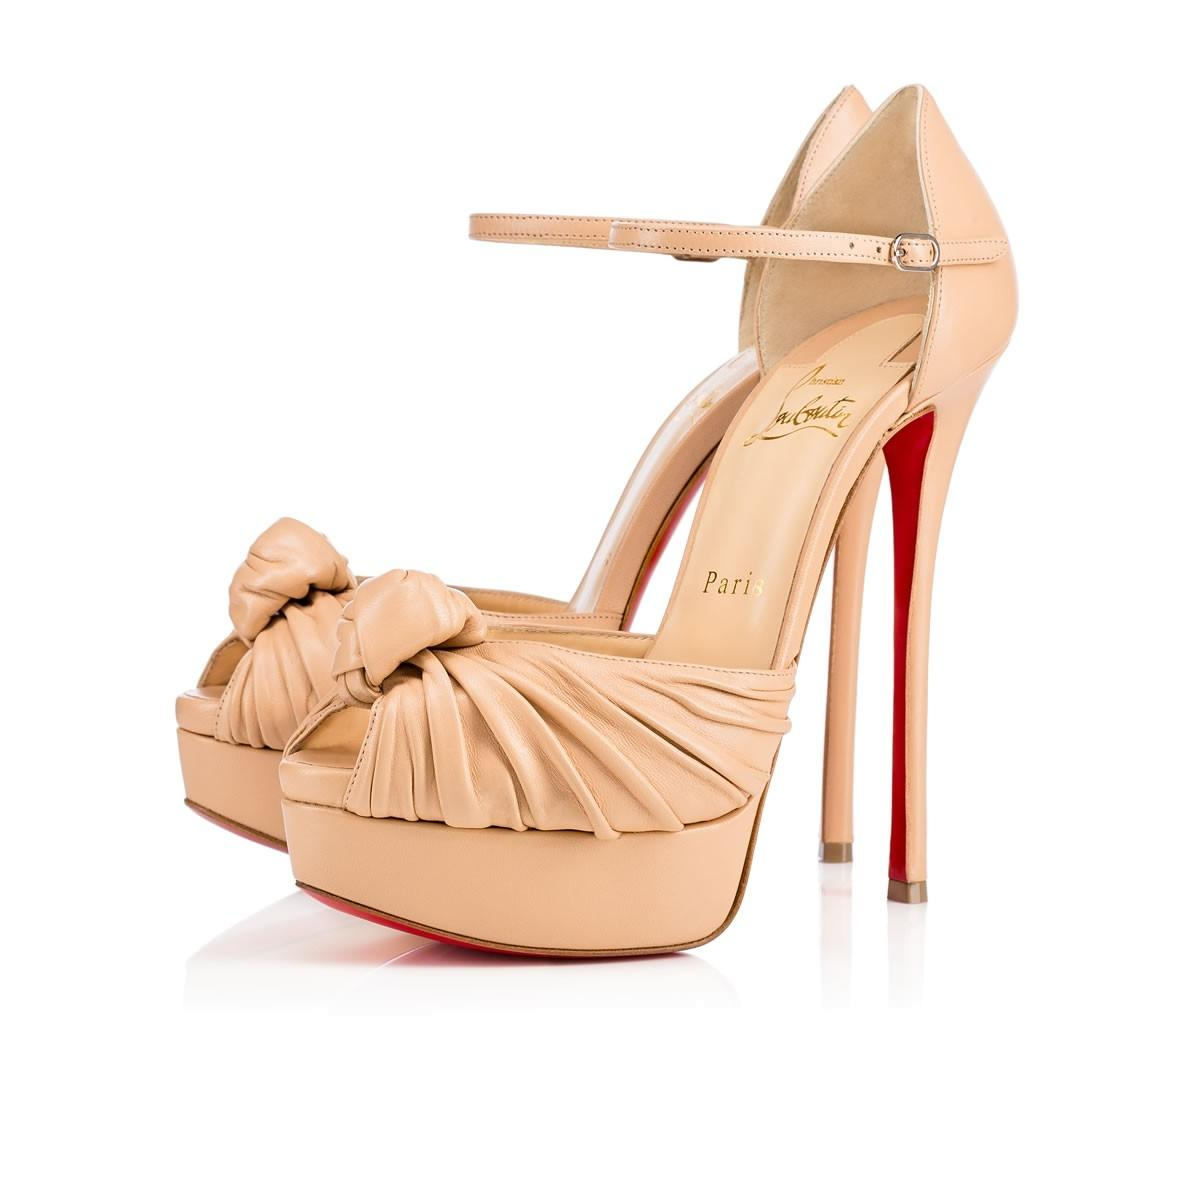 18a42c21a77 ... Christian Louboutin Nude Classic Marchavekel 150mm Nappa Leather Ankle  Strap Peep Toe Heels Sandals Size EU 39.5 (Approx. US 9.5) Regular (M